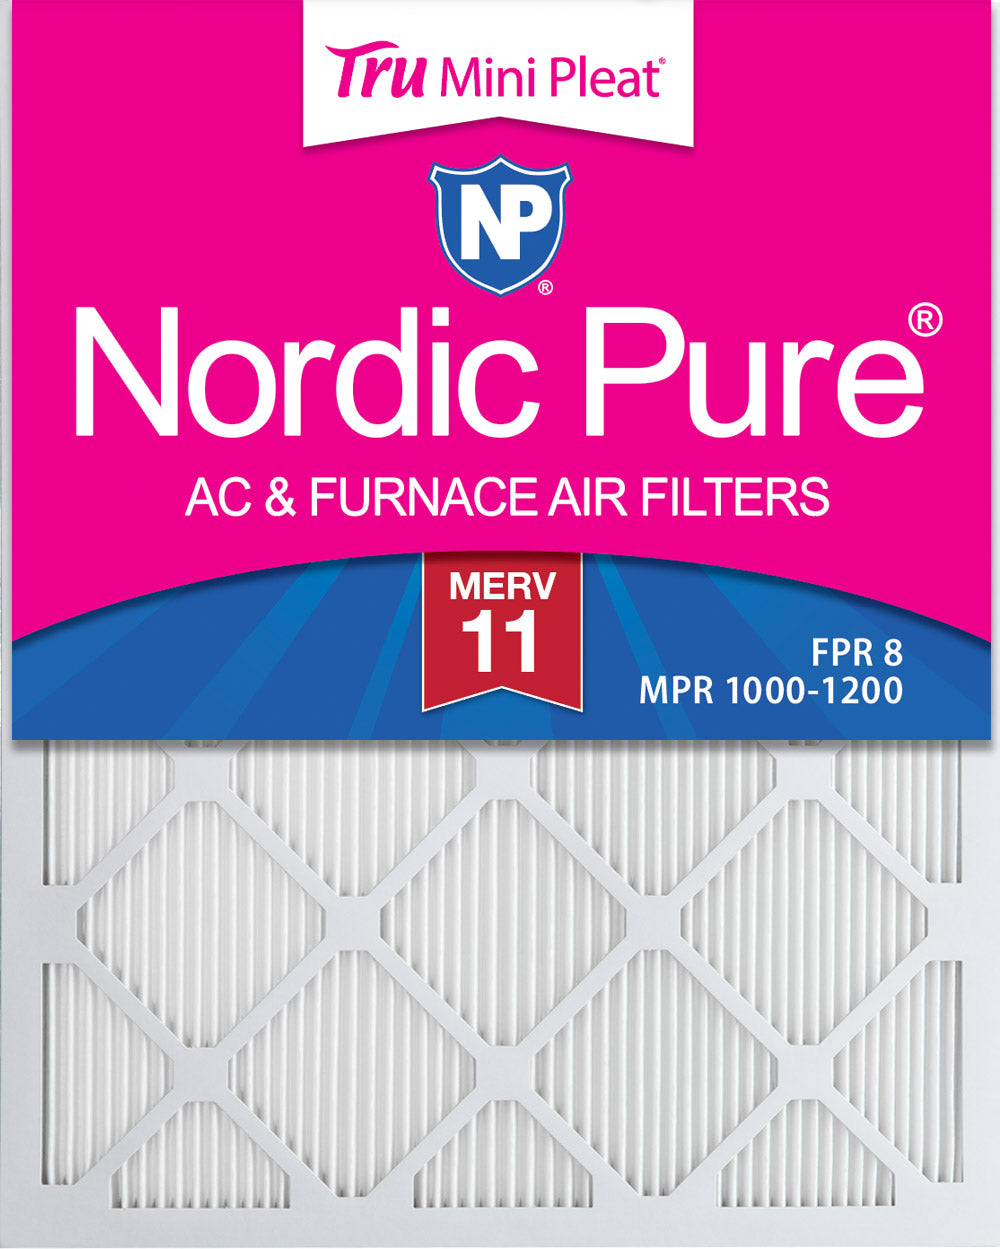 20x24x1 Tru Mini Pleat MERV 11 AC Furnace Air Filters 6 Pack